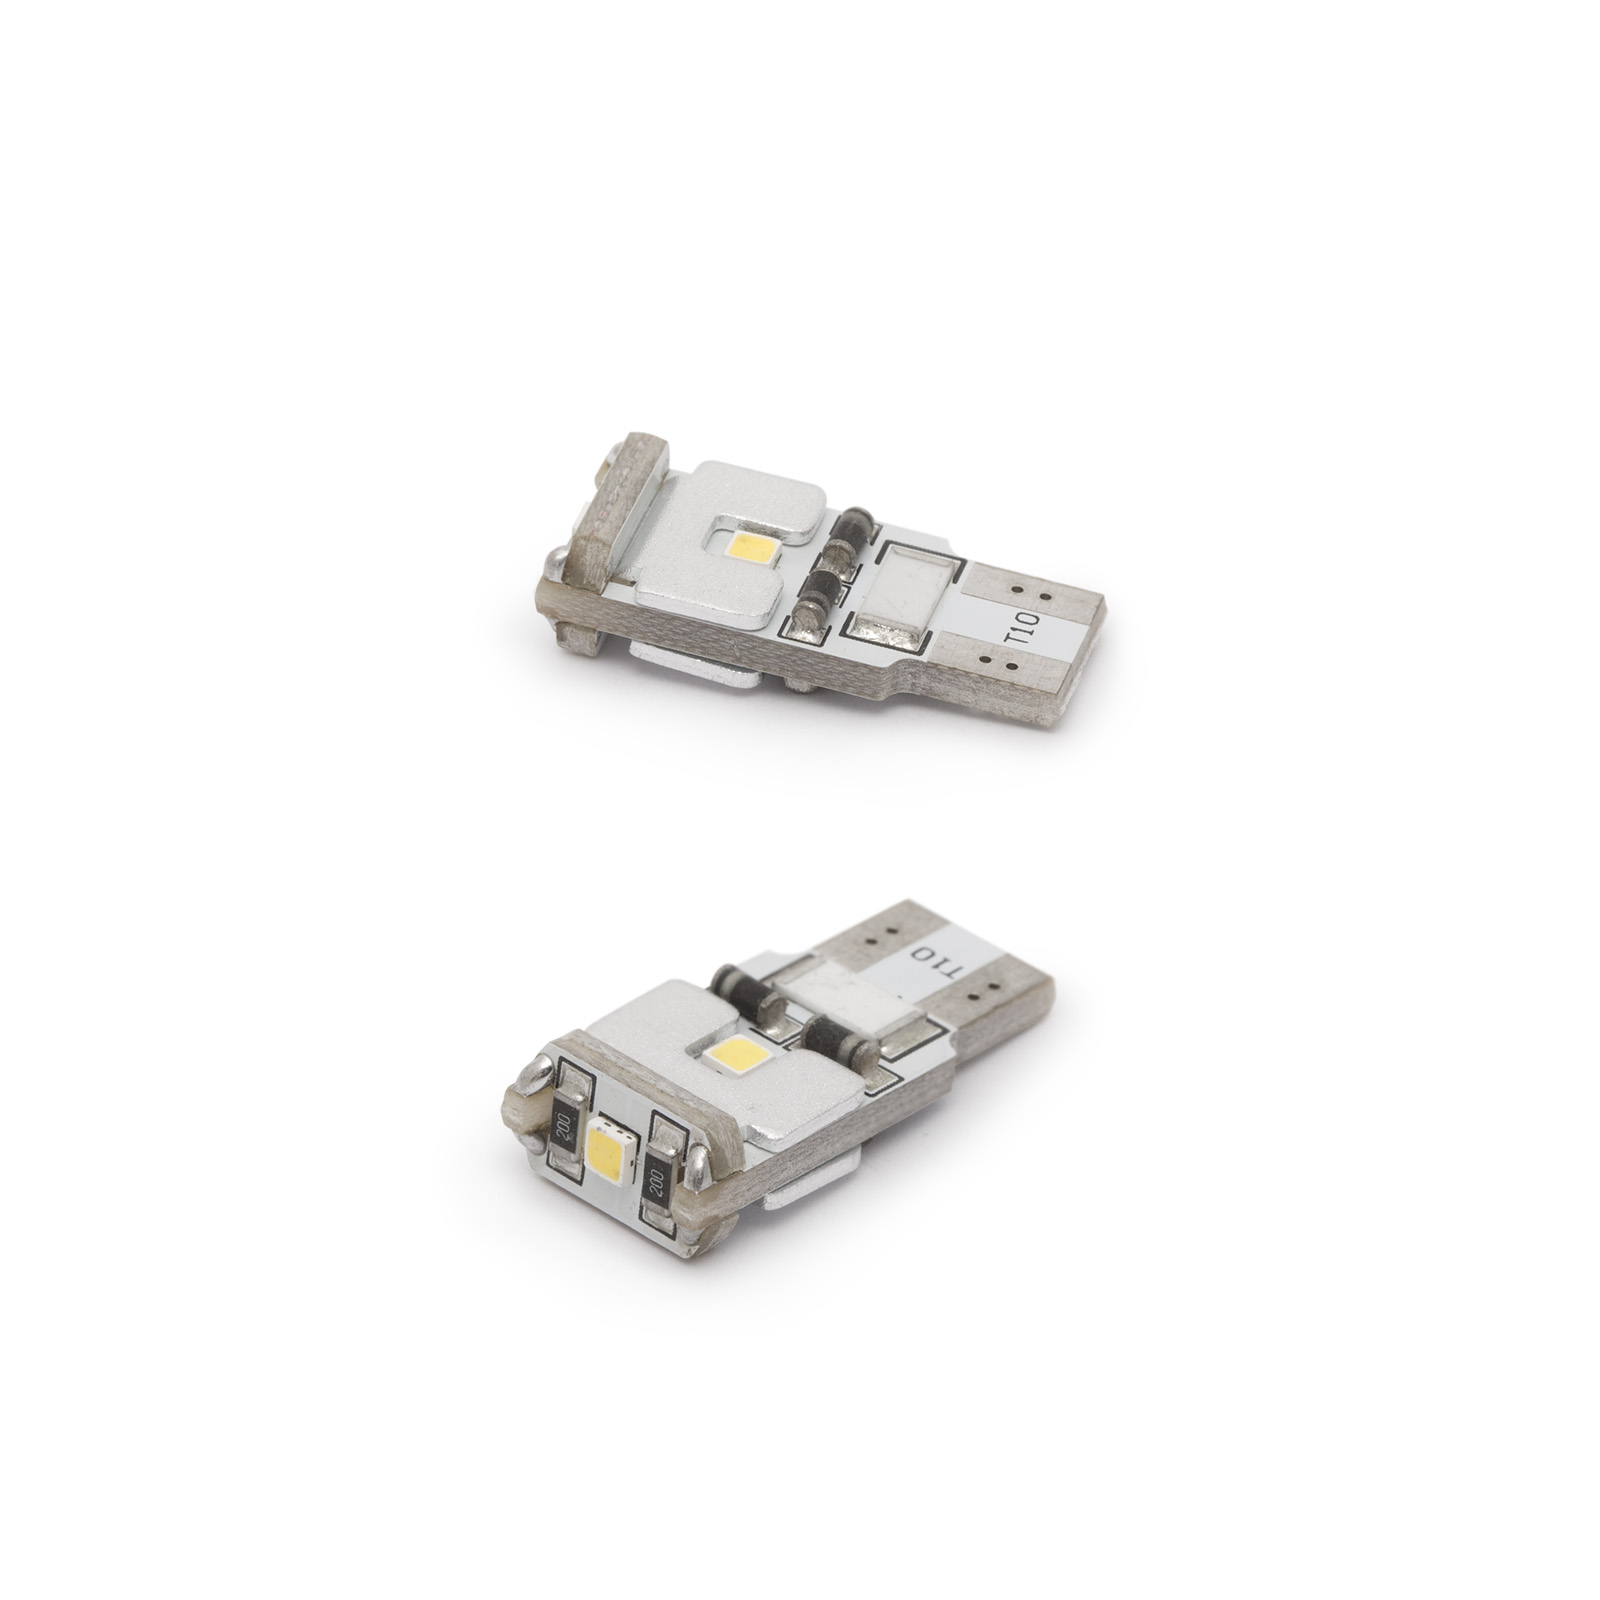 LED izzó CAN109 Canbus 6W - T10 - 180umen 2 db/bliszter